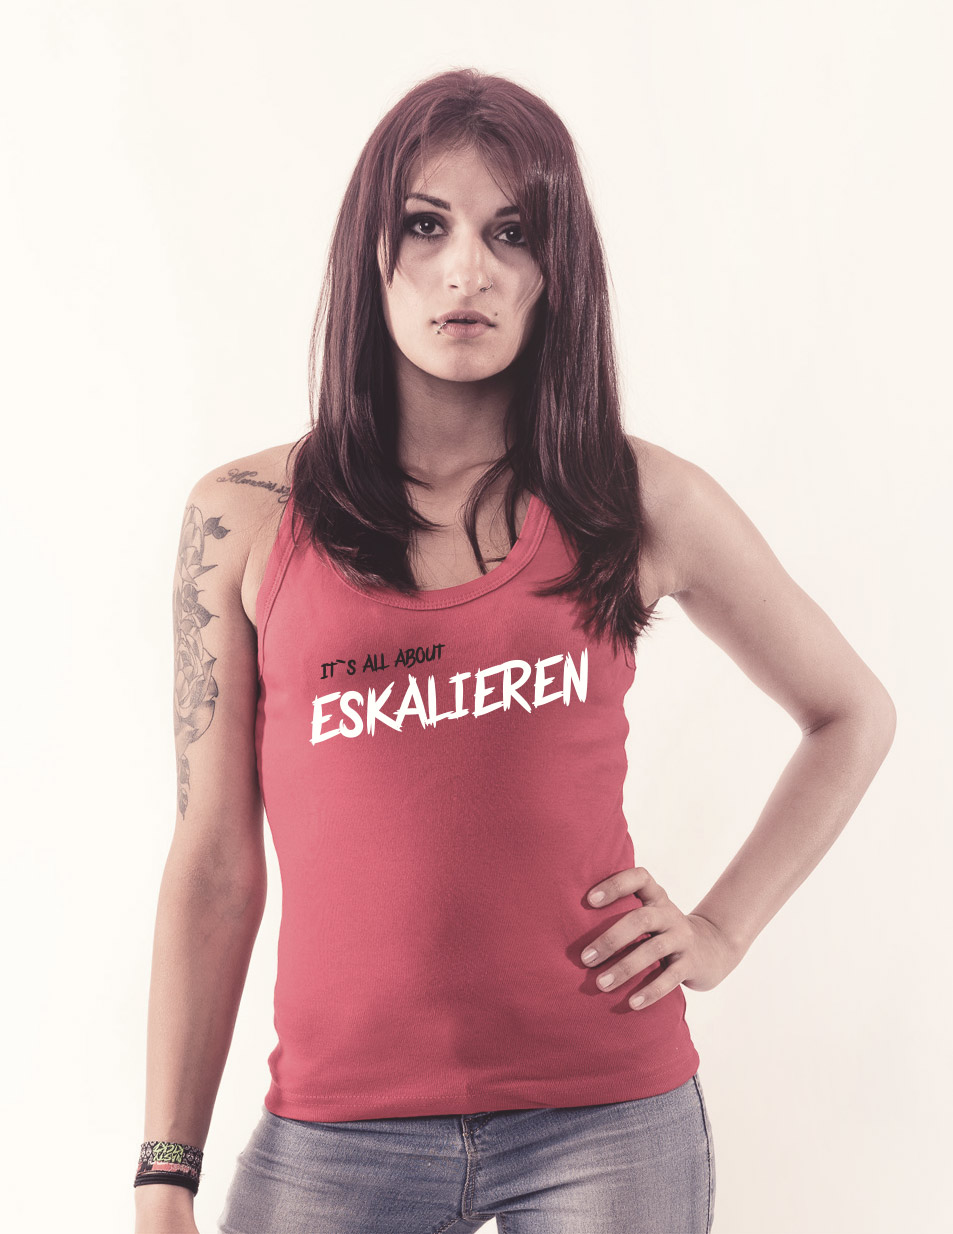 Its all about Eskalieren - Girly Tank Top Pink Edition mehrfarbig auf pink